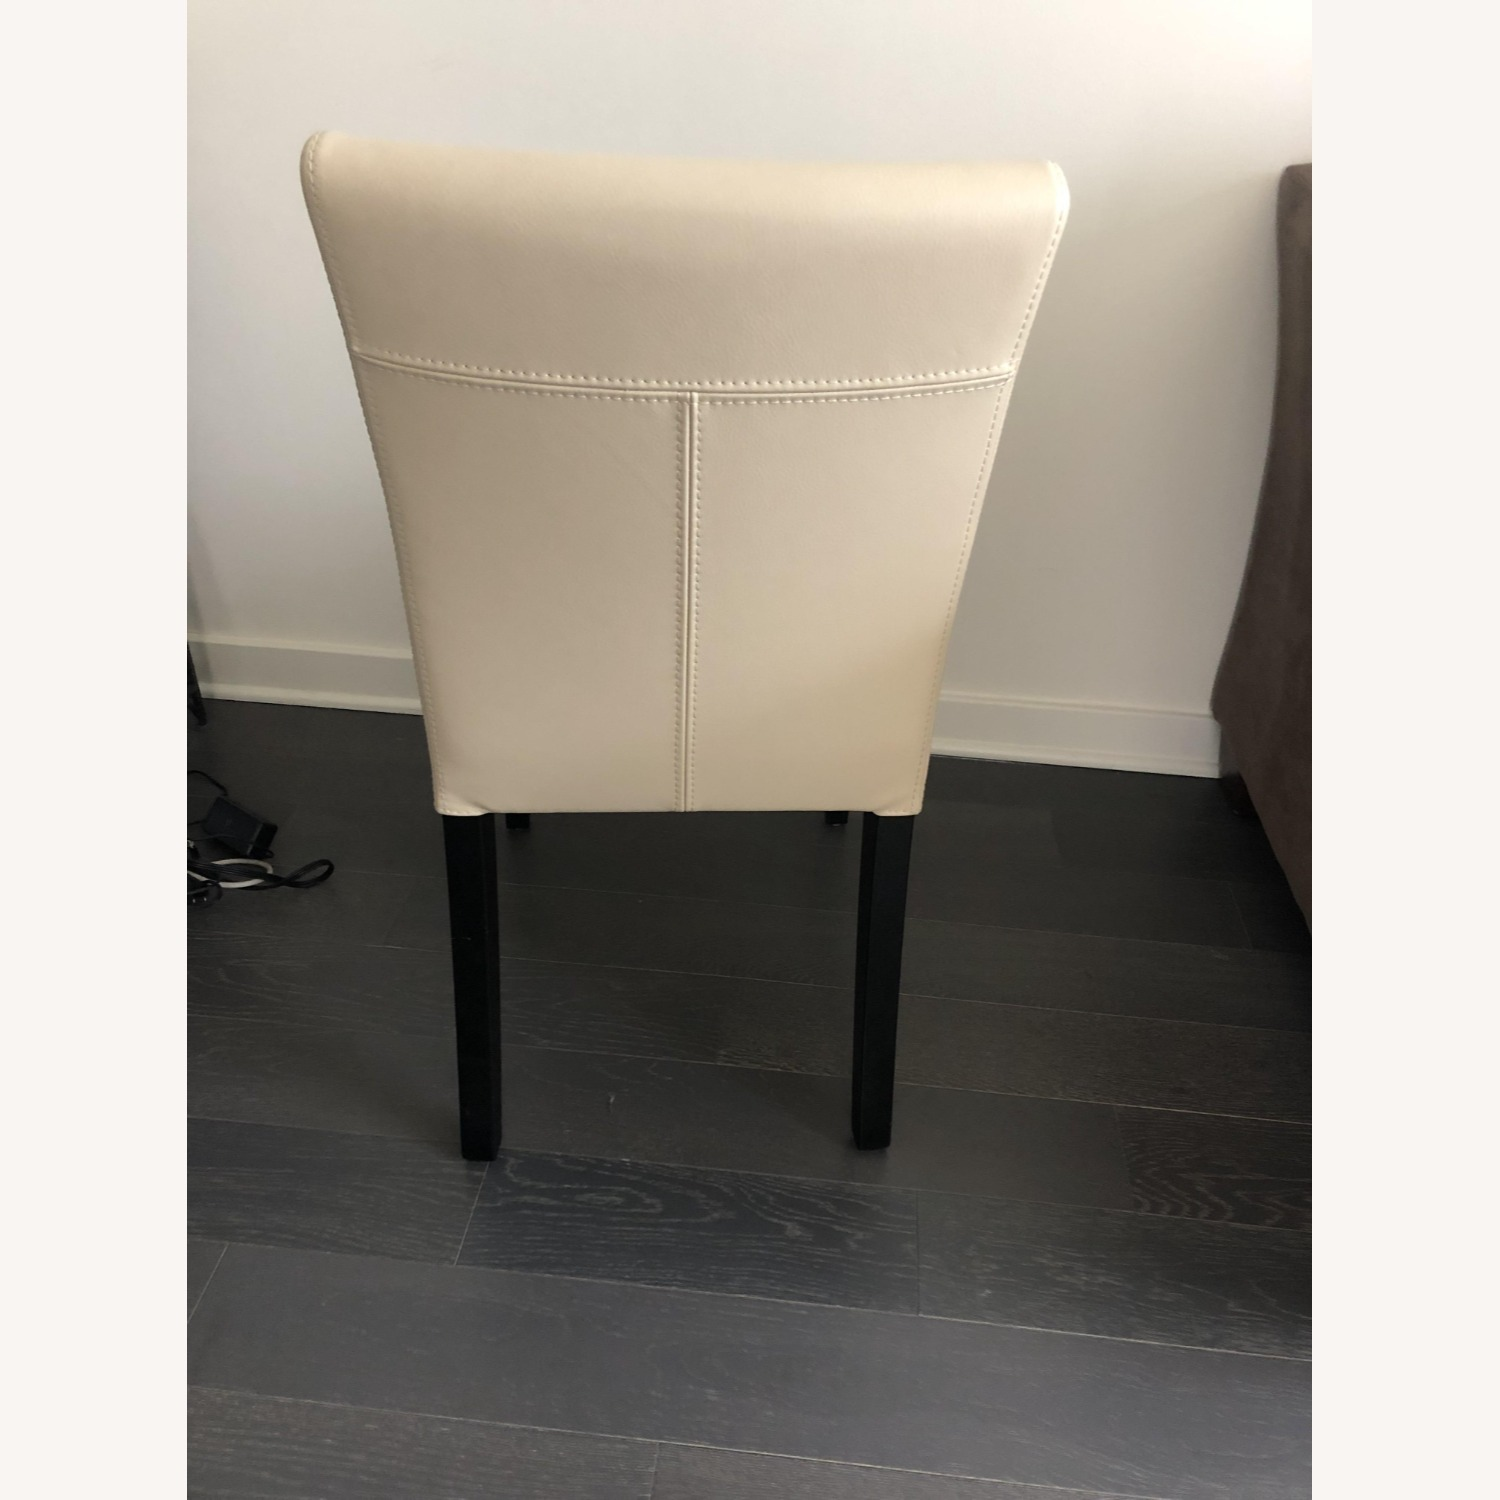 Crate & Barrel Lowe Ivory Leather Dining Chair - image-4